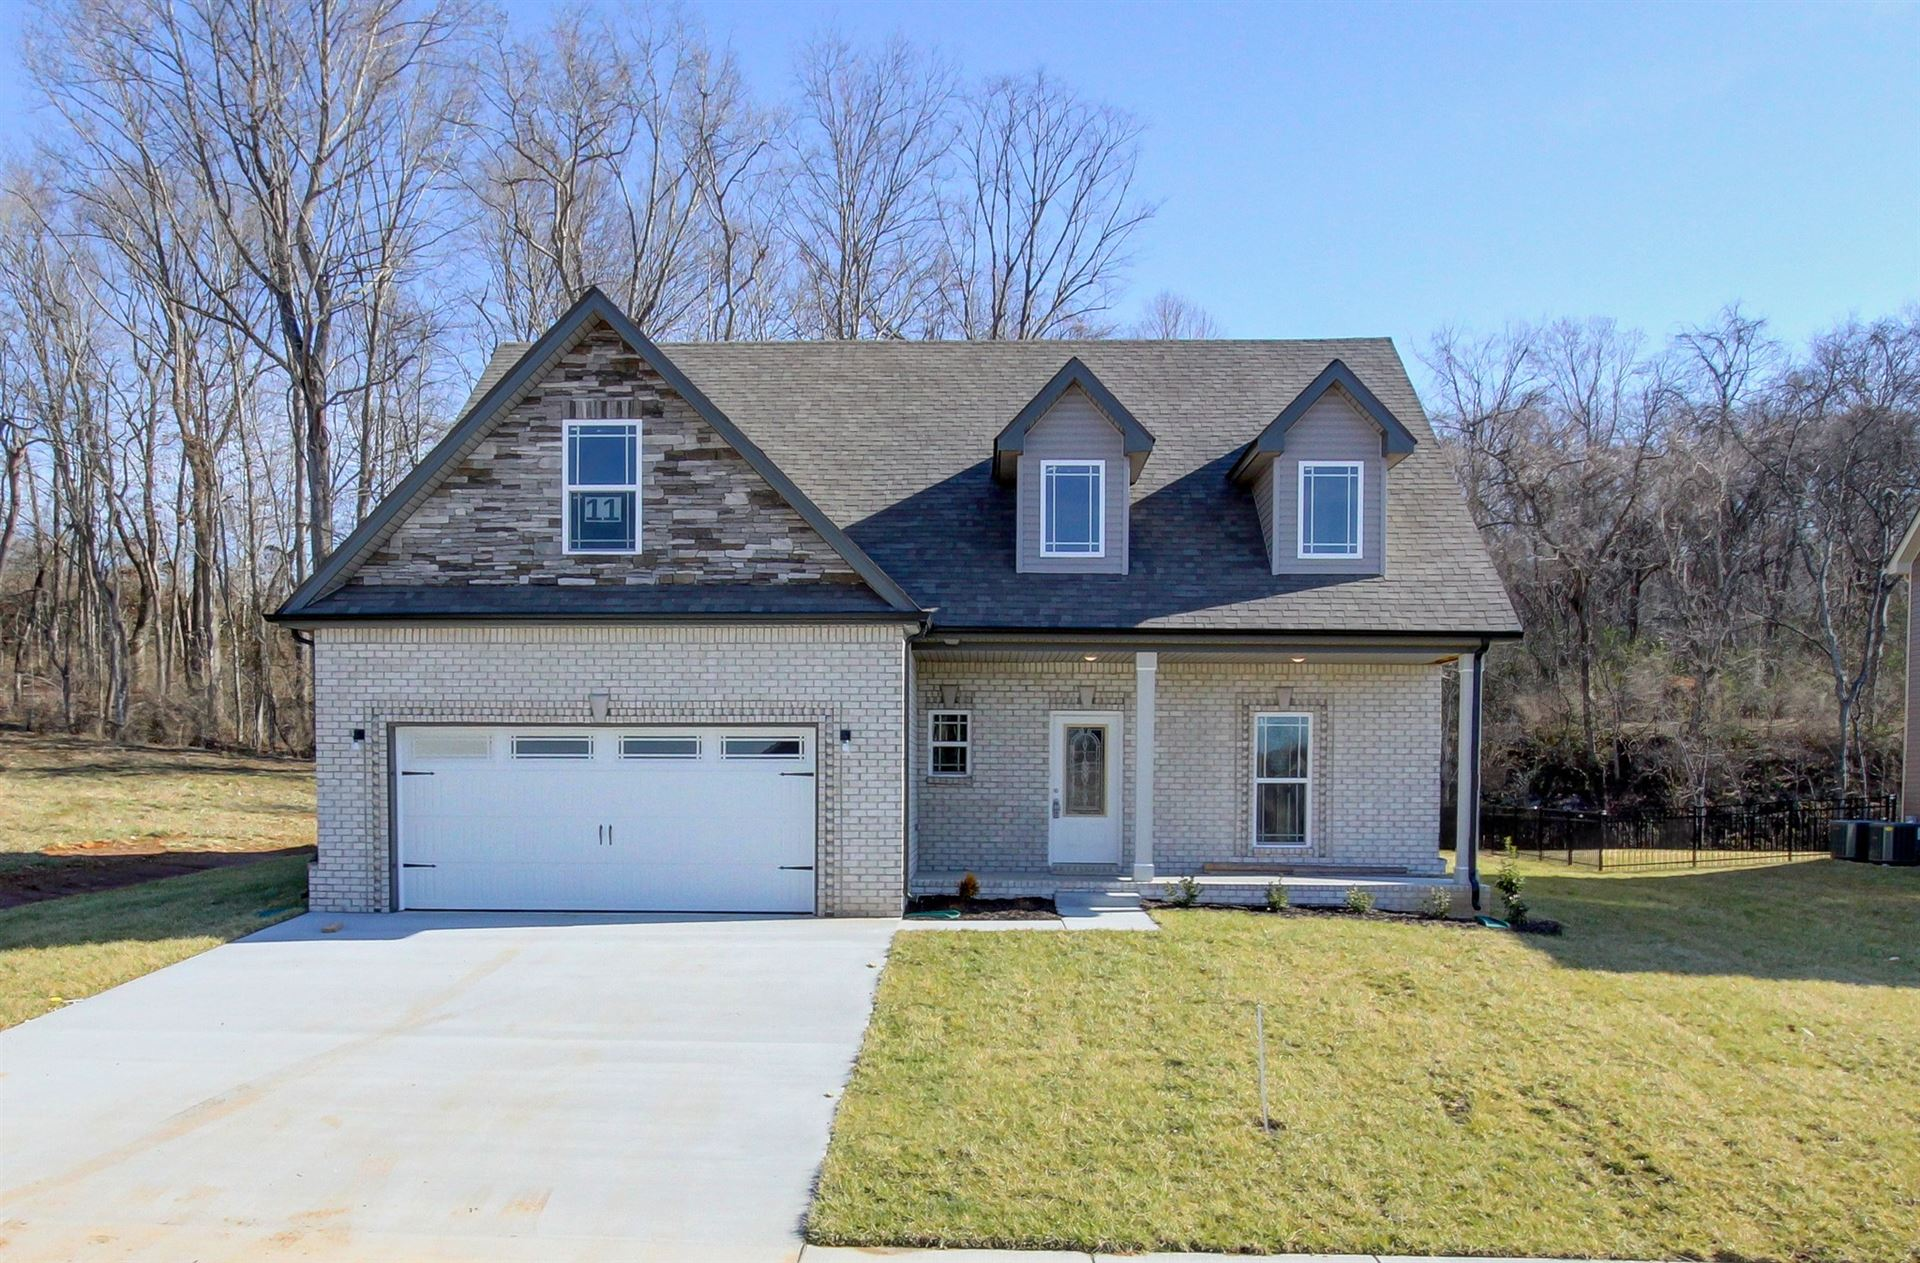 11 River Chase, Clarksville, TN 37043 - MLS#: 2292327